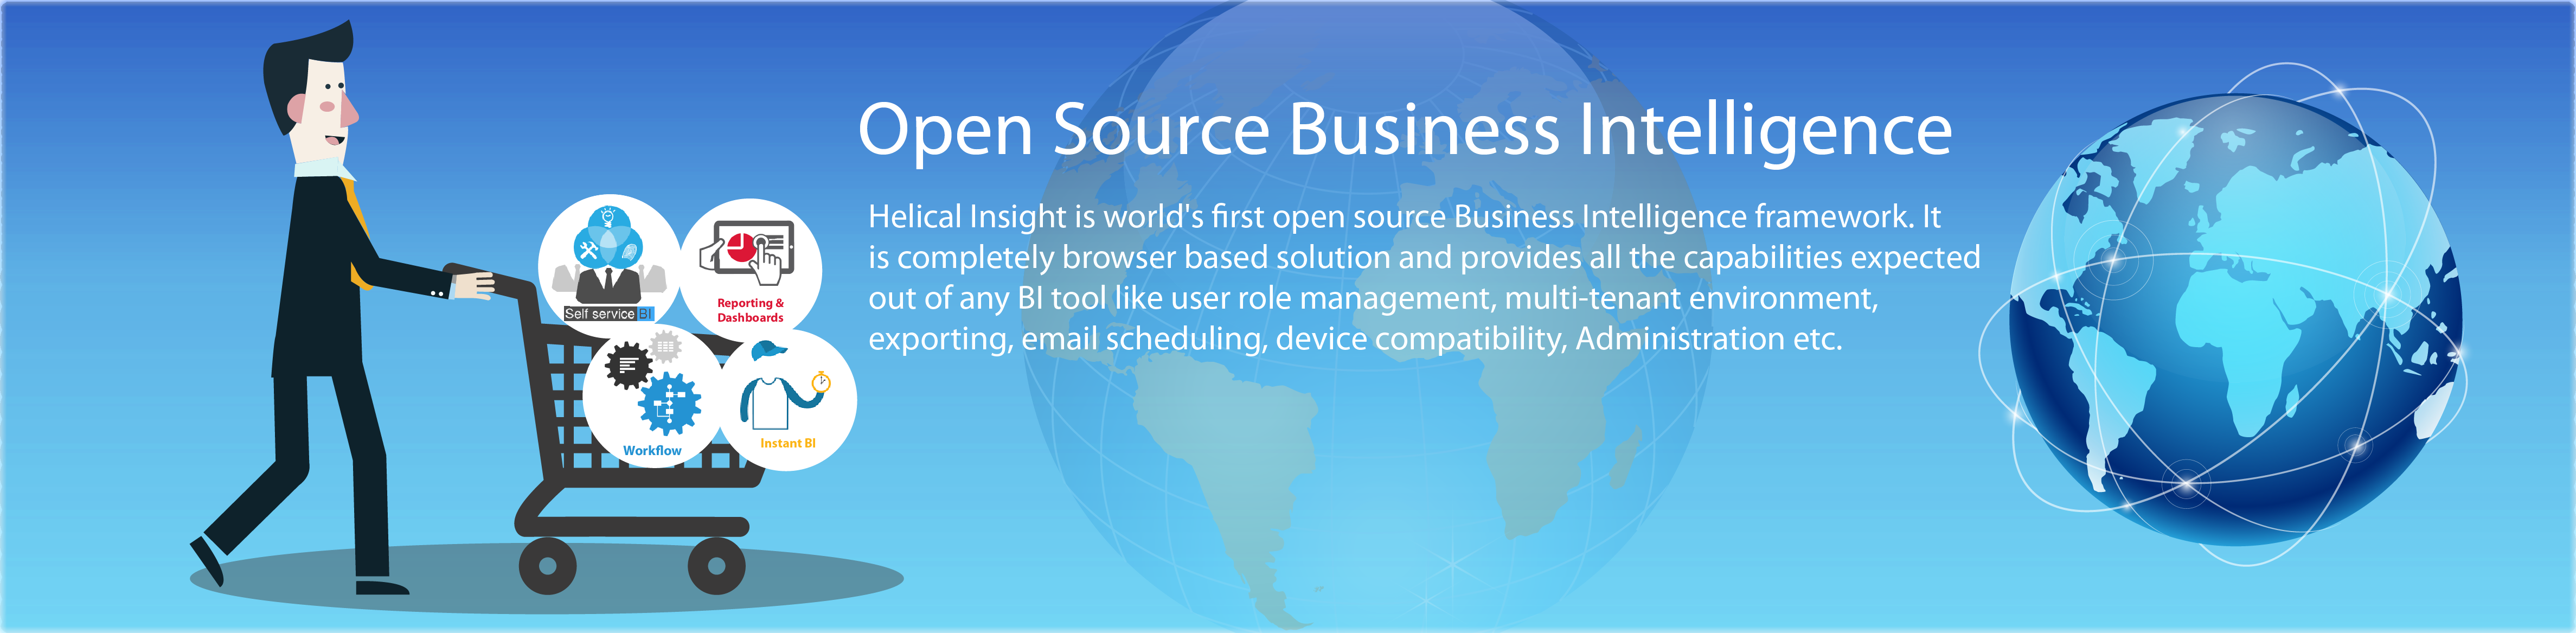 Open Source Business Intelligence - Image 1